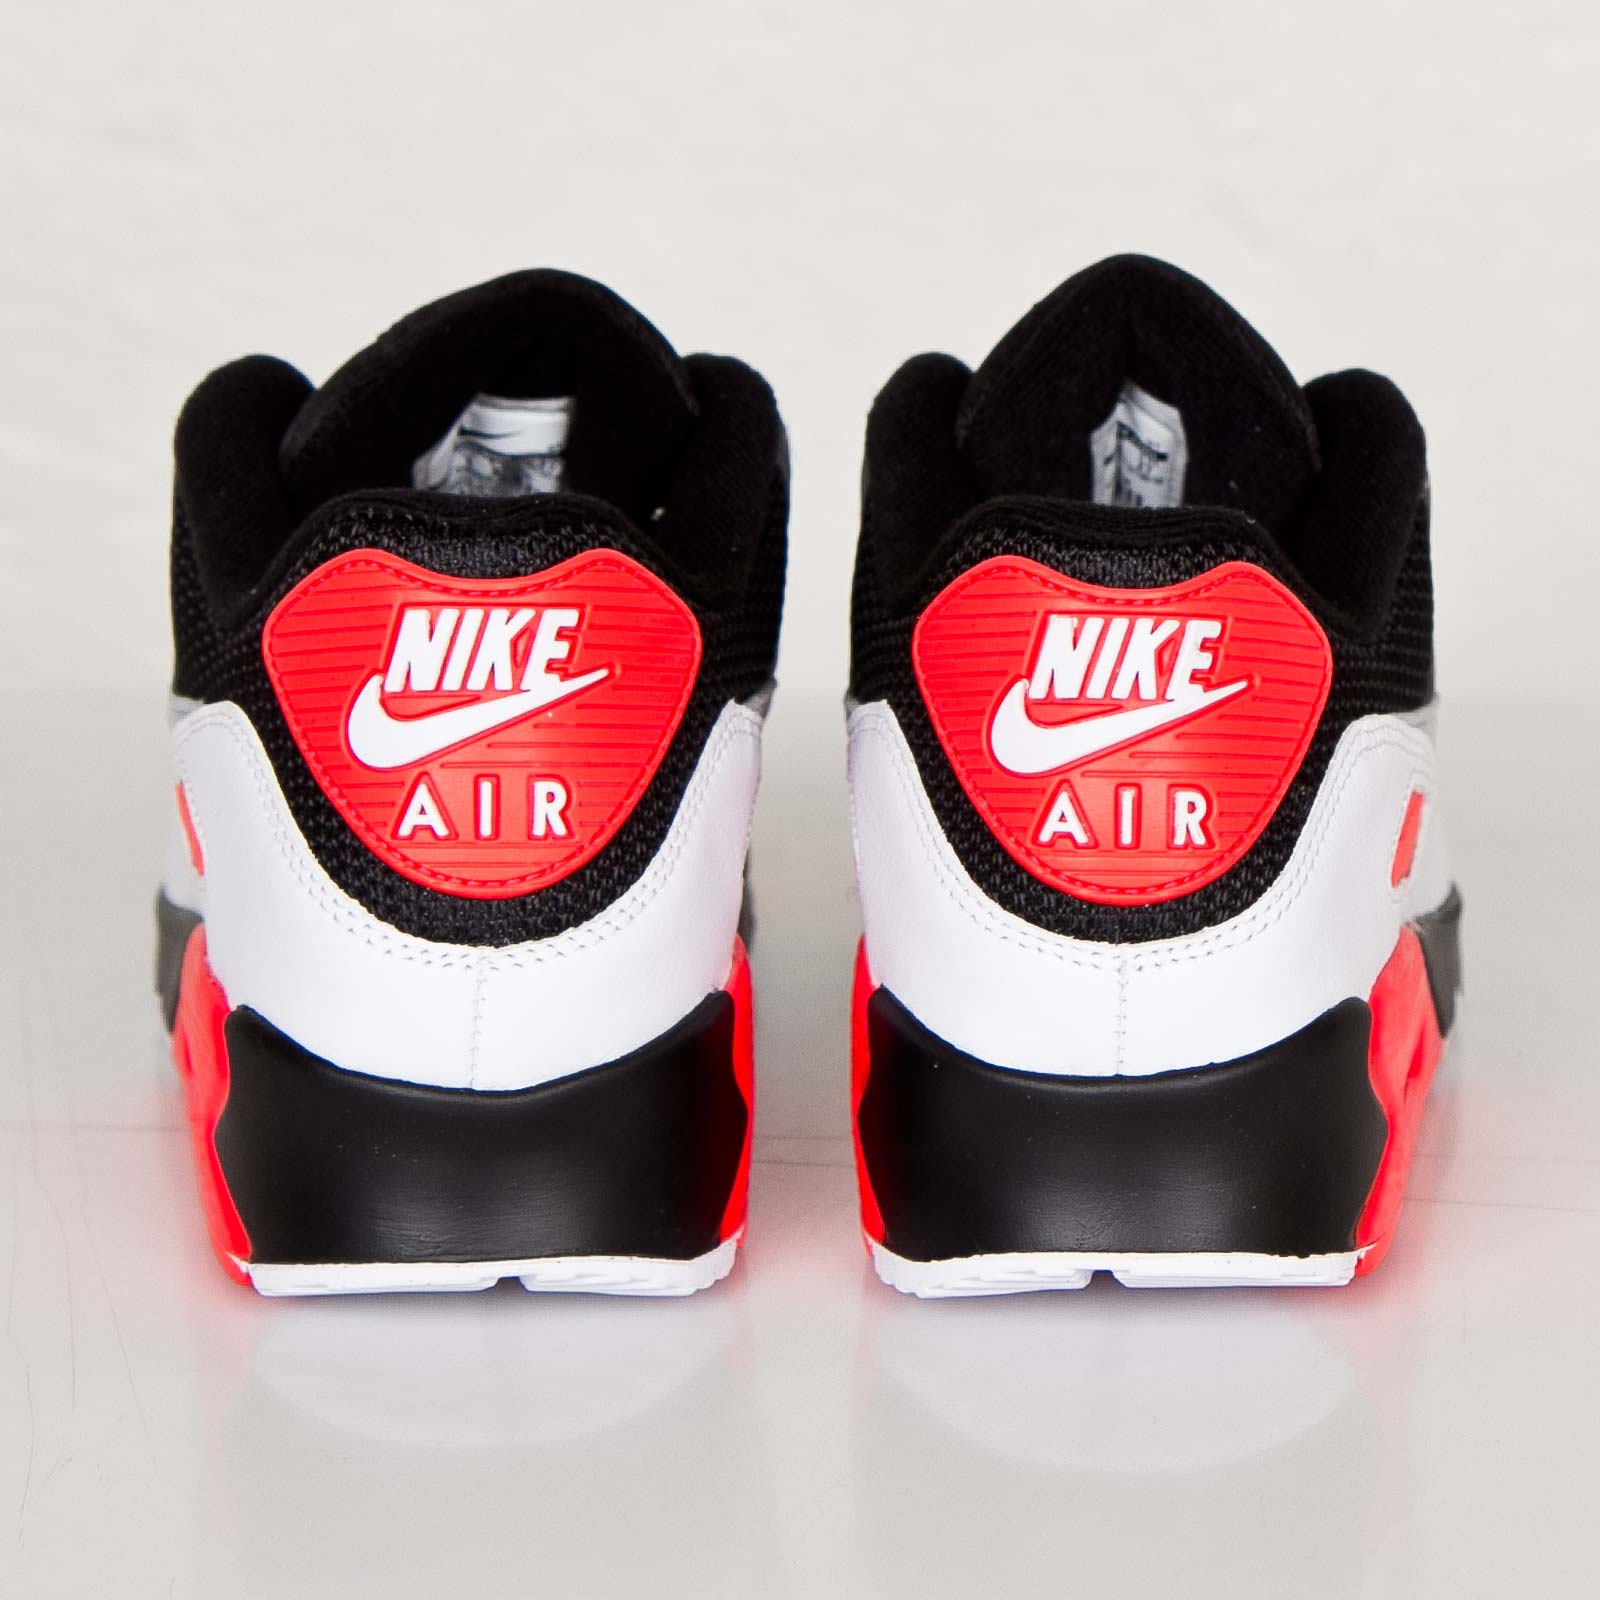 official photos 92e9c 3218f Nike Air Max 90 OG - 725233-006 - Sneakersnstuff   sneakers   streetwear  online since 1999